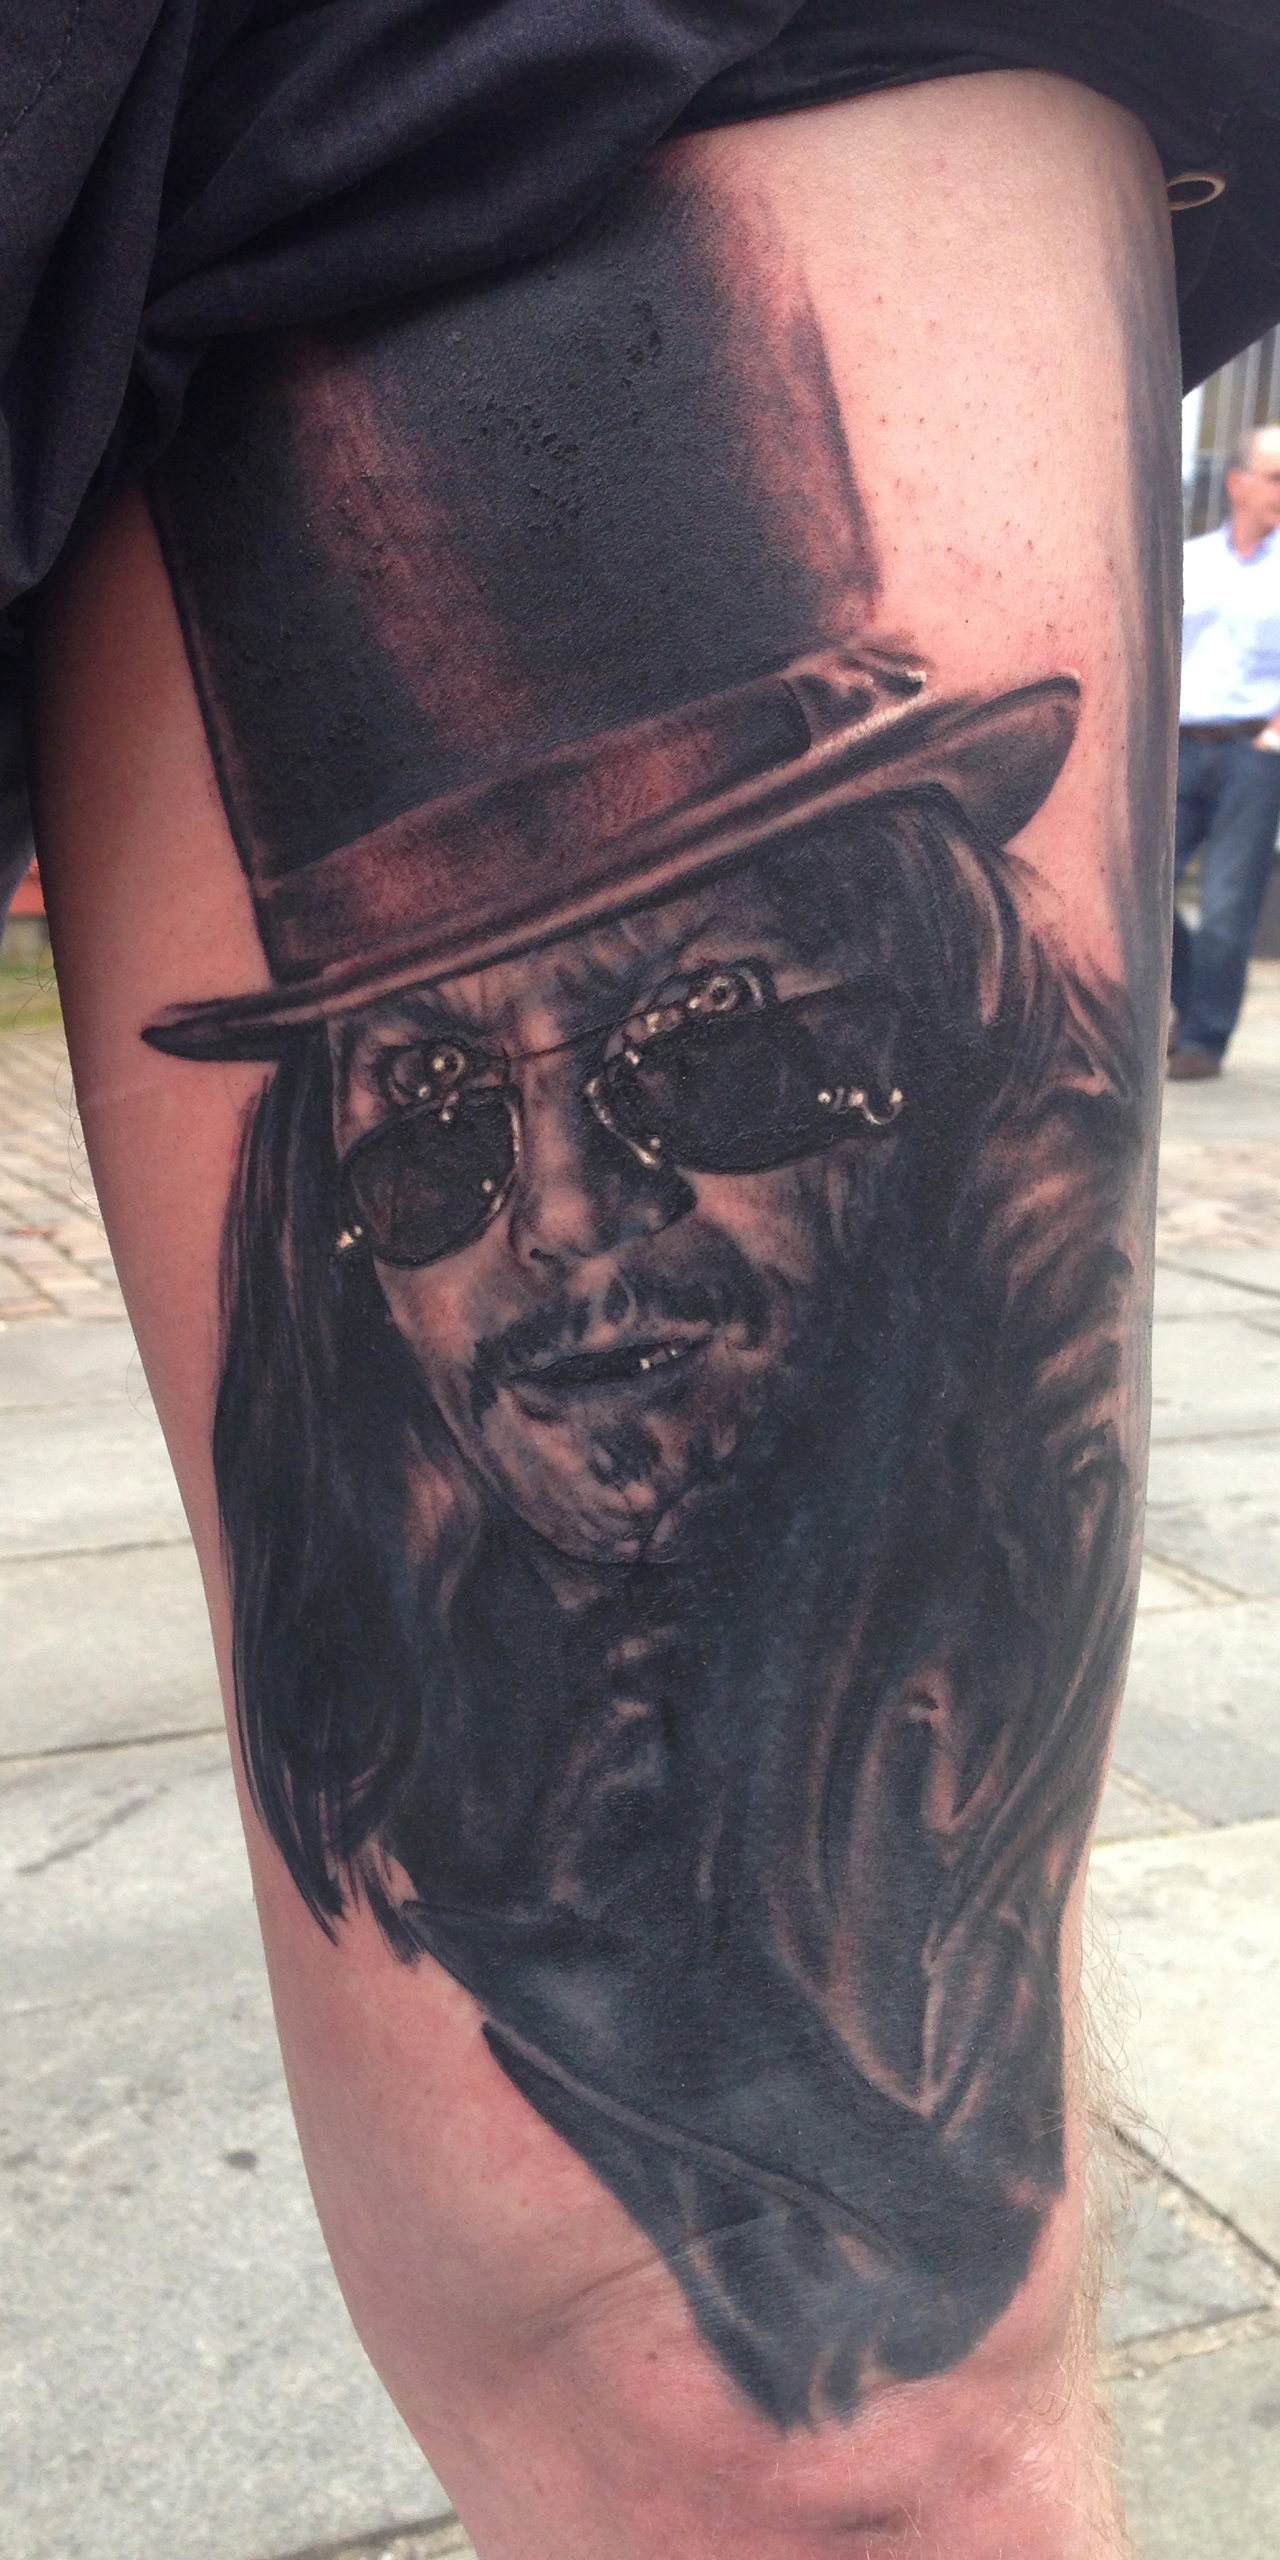 Black and Grey Gary Oldman Dracula Vampire Portrait Tattoo, (some fresh, some, healed) Stavanger Tattoo Convention, Norway